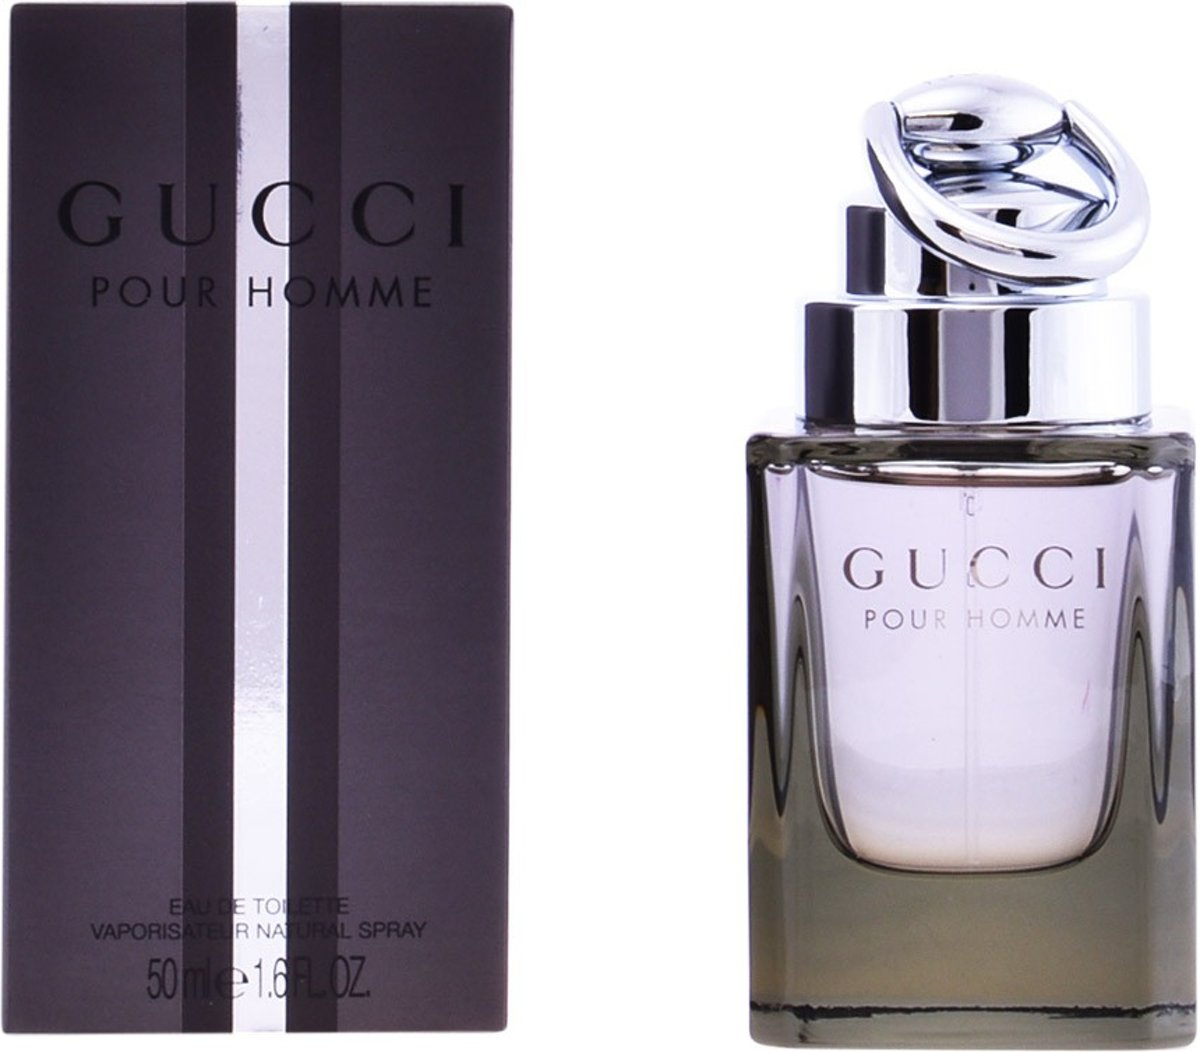 MULTI BUNDEL 2 stuks GUCCI BY GUCCI POUR HOMME Eau de Toilette Spray 50 ml